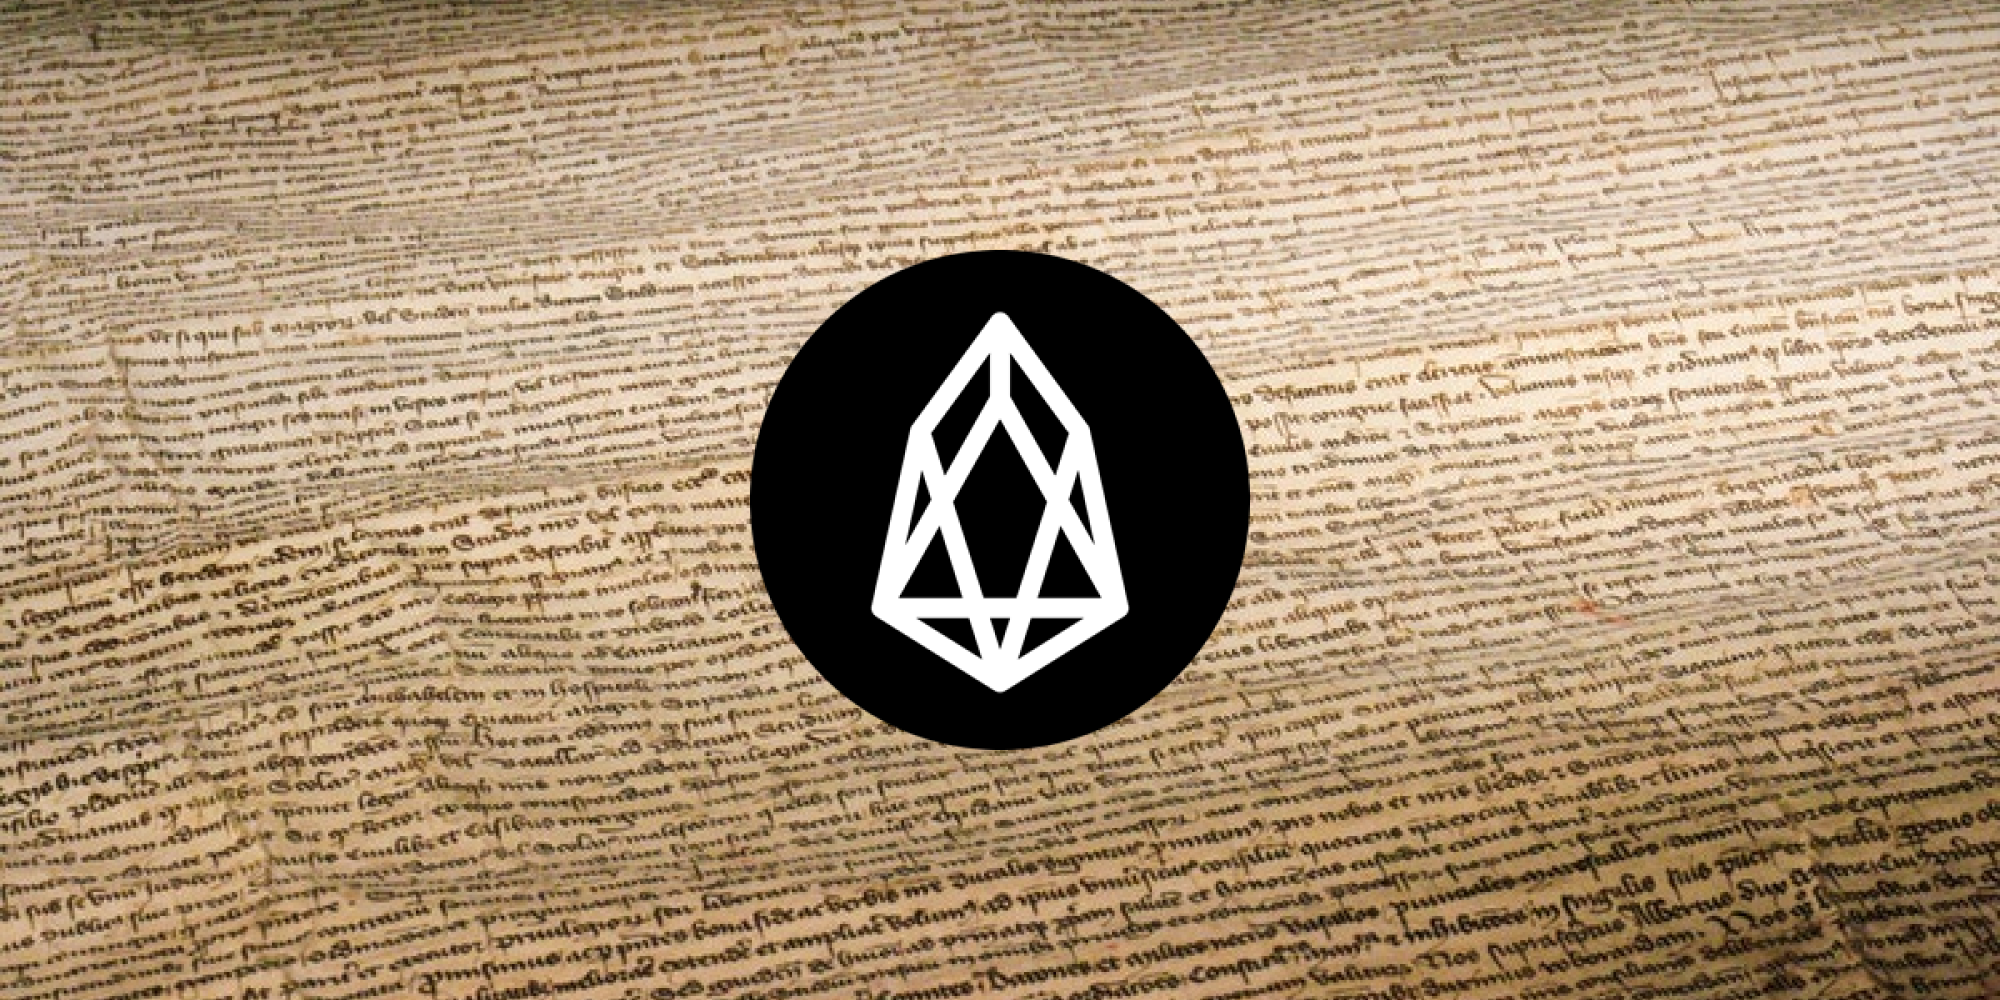 EOS Founder Wants to Scrap the Platform's Constitution, Start Anew